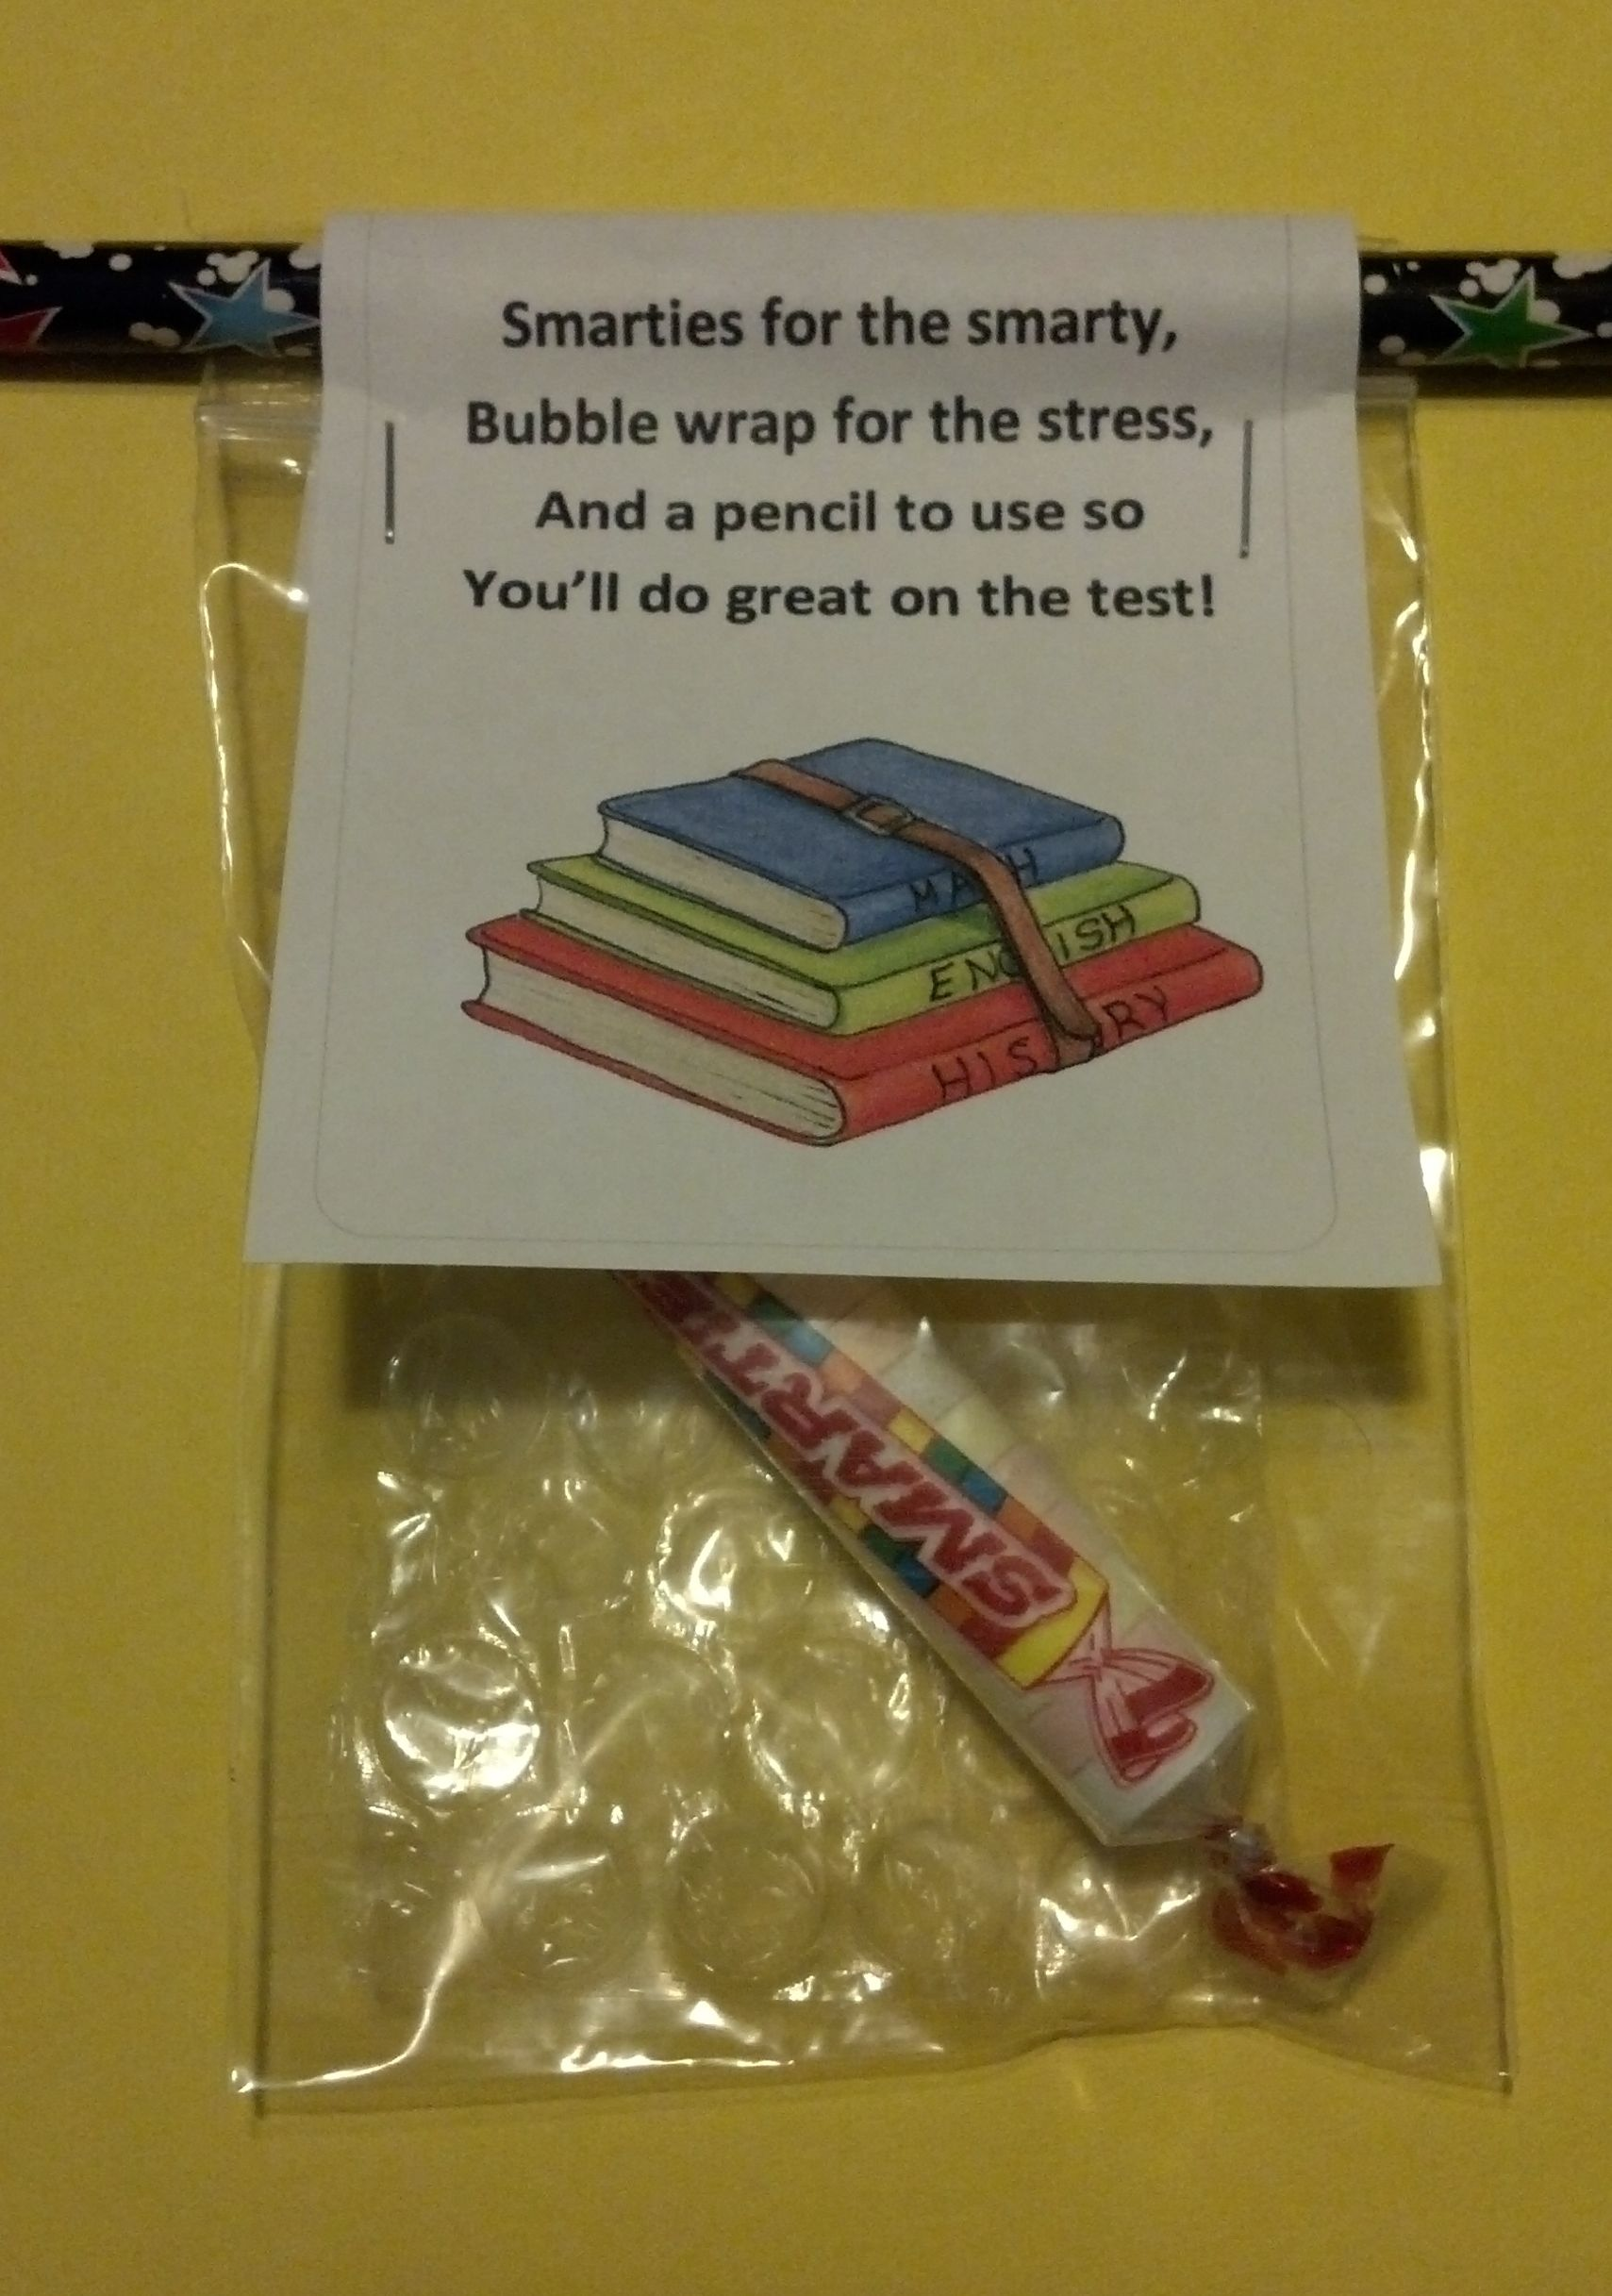 Standardized Test Motivation- maybe replace the bubble wrap with a stress ball or something.